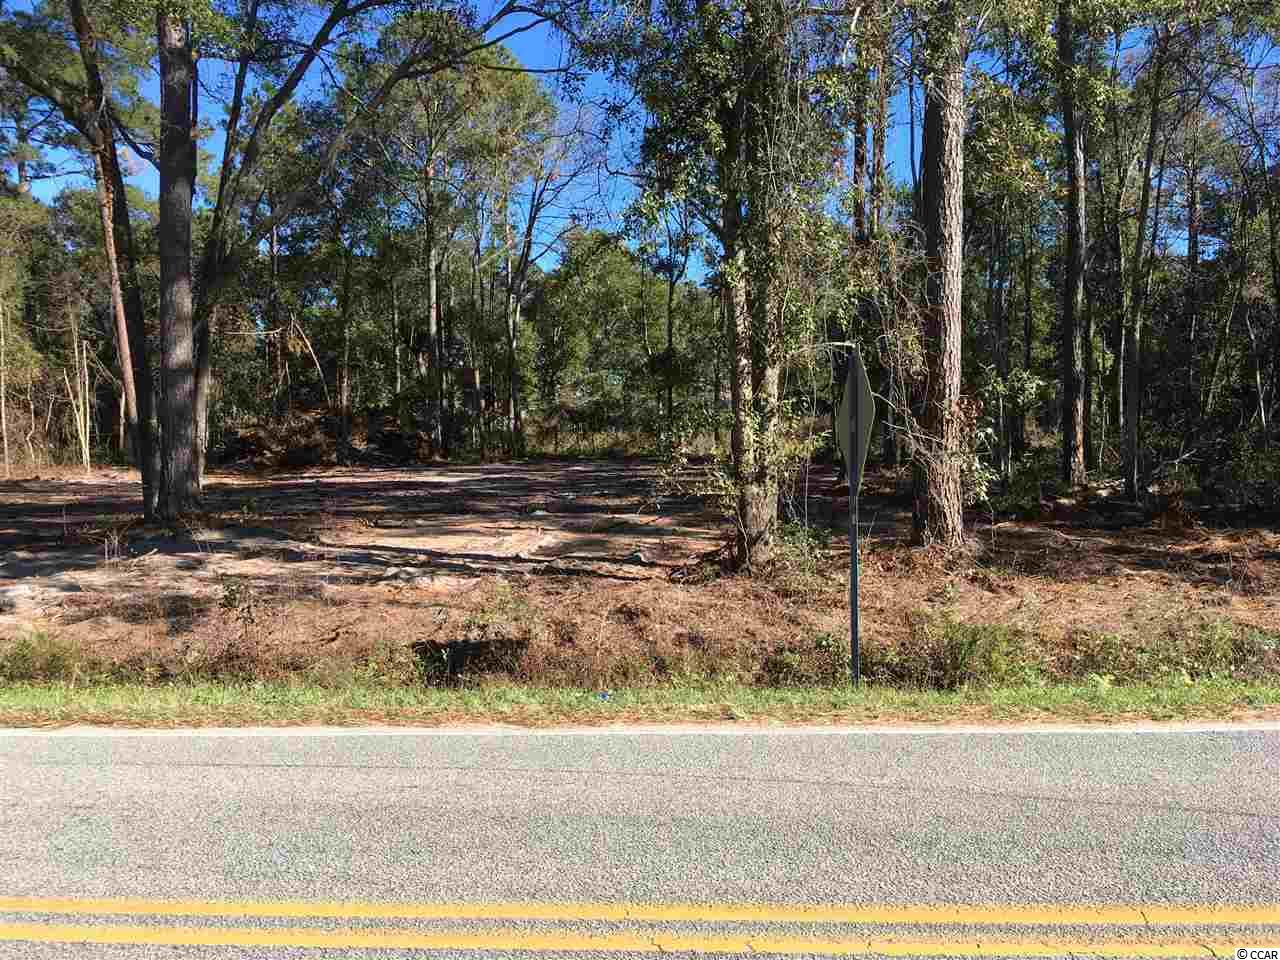 Acreage for Sale at PETIGRU DRIVE PETIGRU DRIVE Pawleys Island, South Carolina 29585 United States